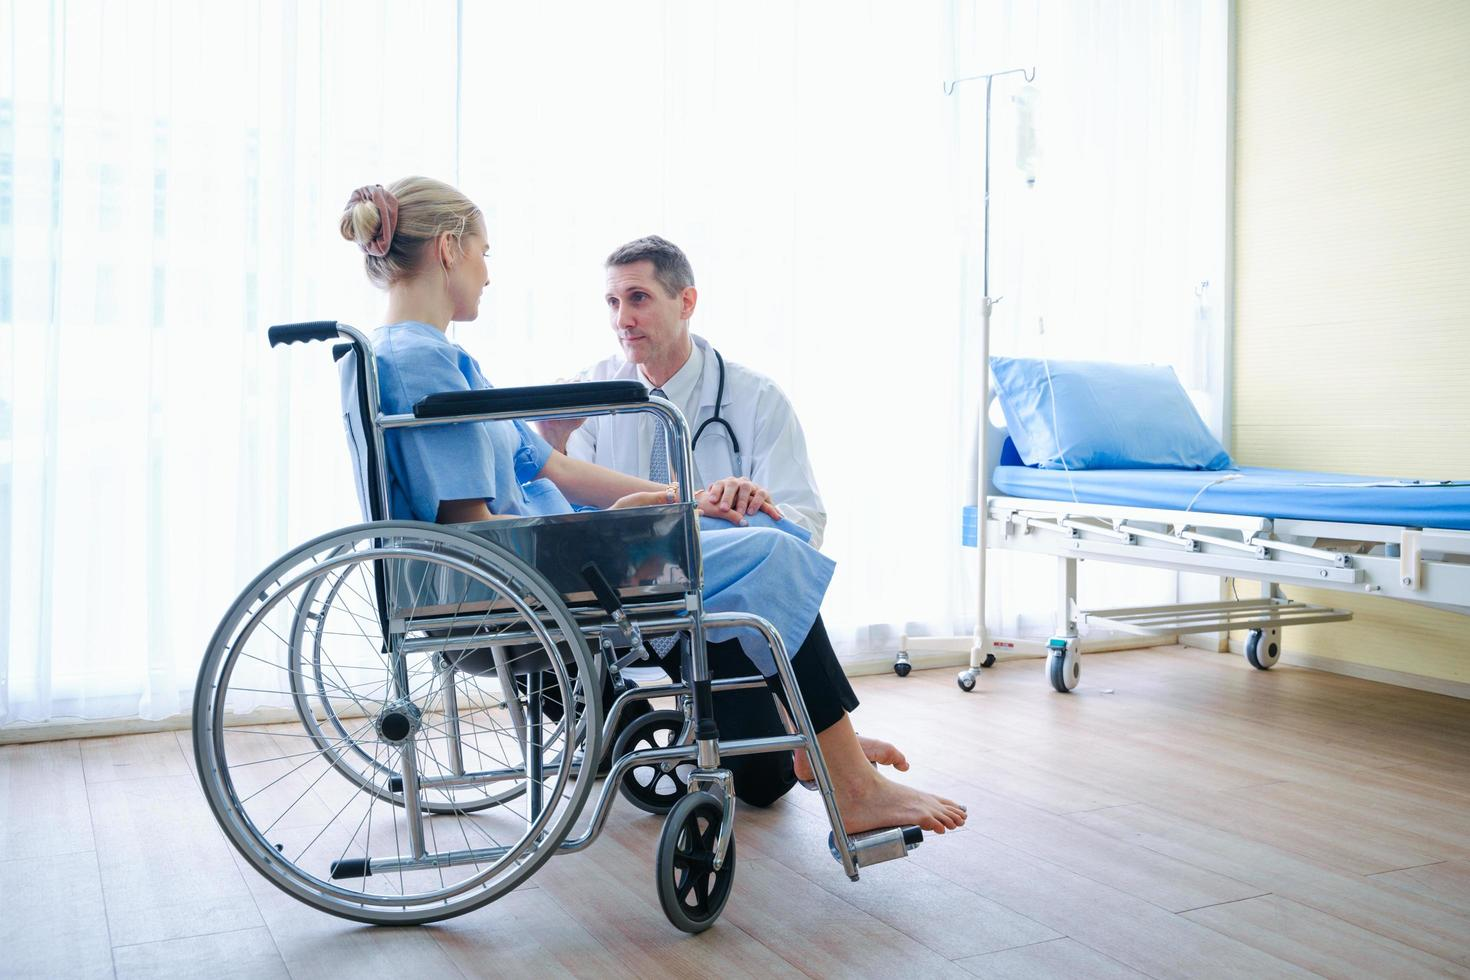 A doctor is talking with patient in wheelchair photo